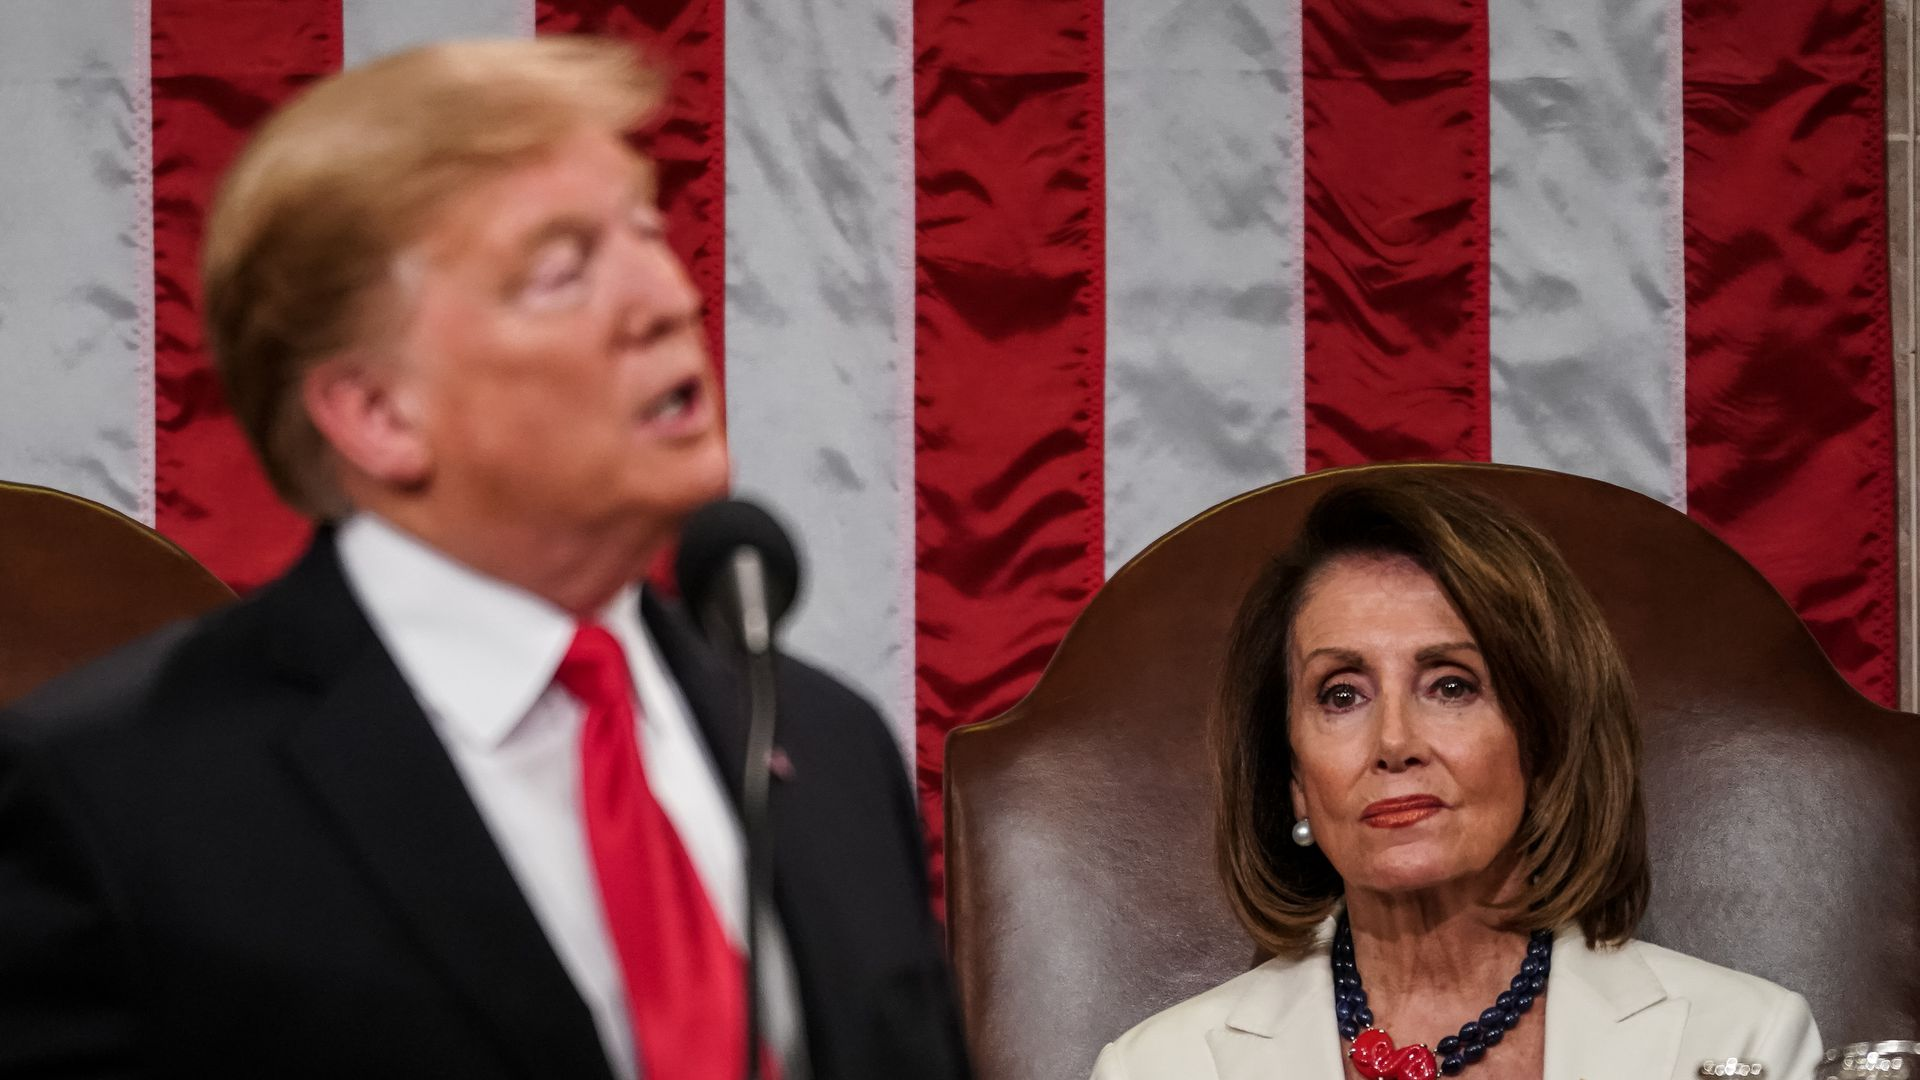 Speaker Nancy Pelosi looks on as U.S. President Donald Trump delivers the State of the Union address in the chamber of the U.S. House of Representatives at the U.S. Capitol Building on February 5.